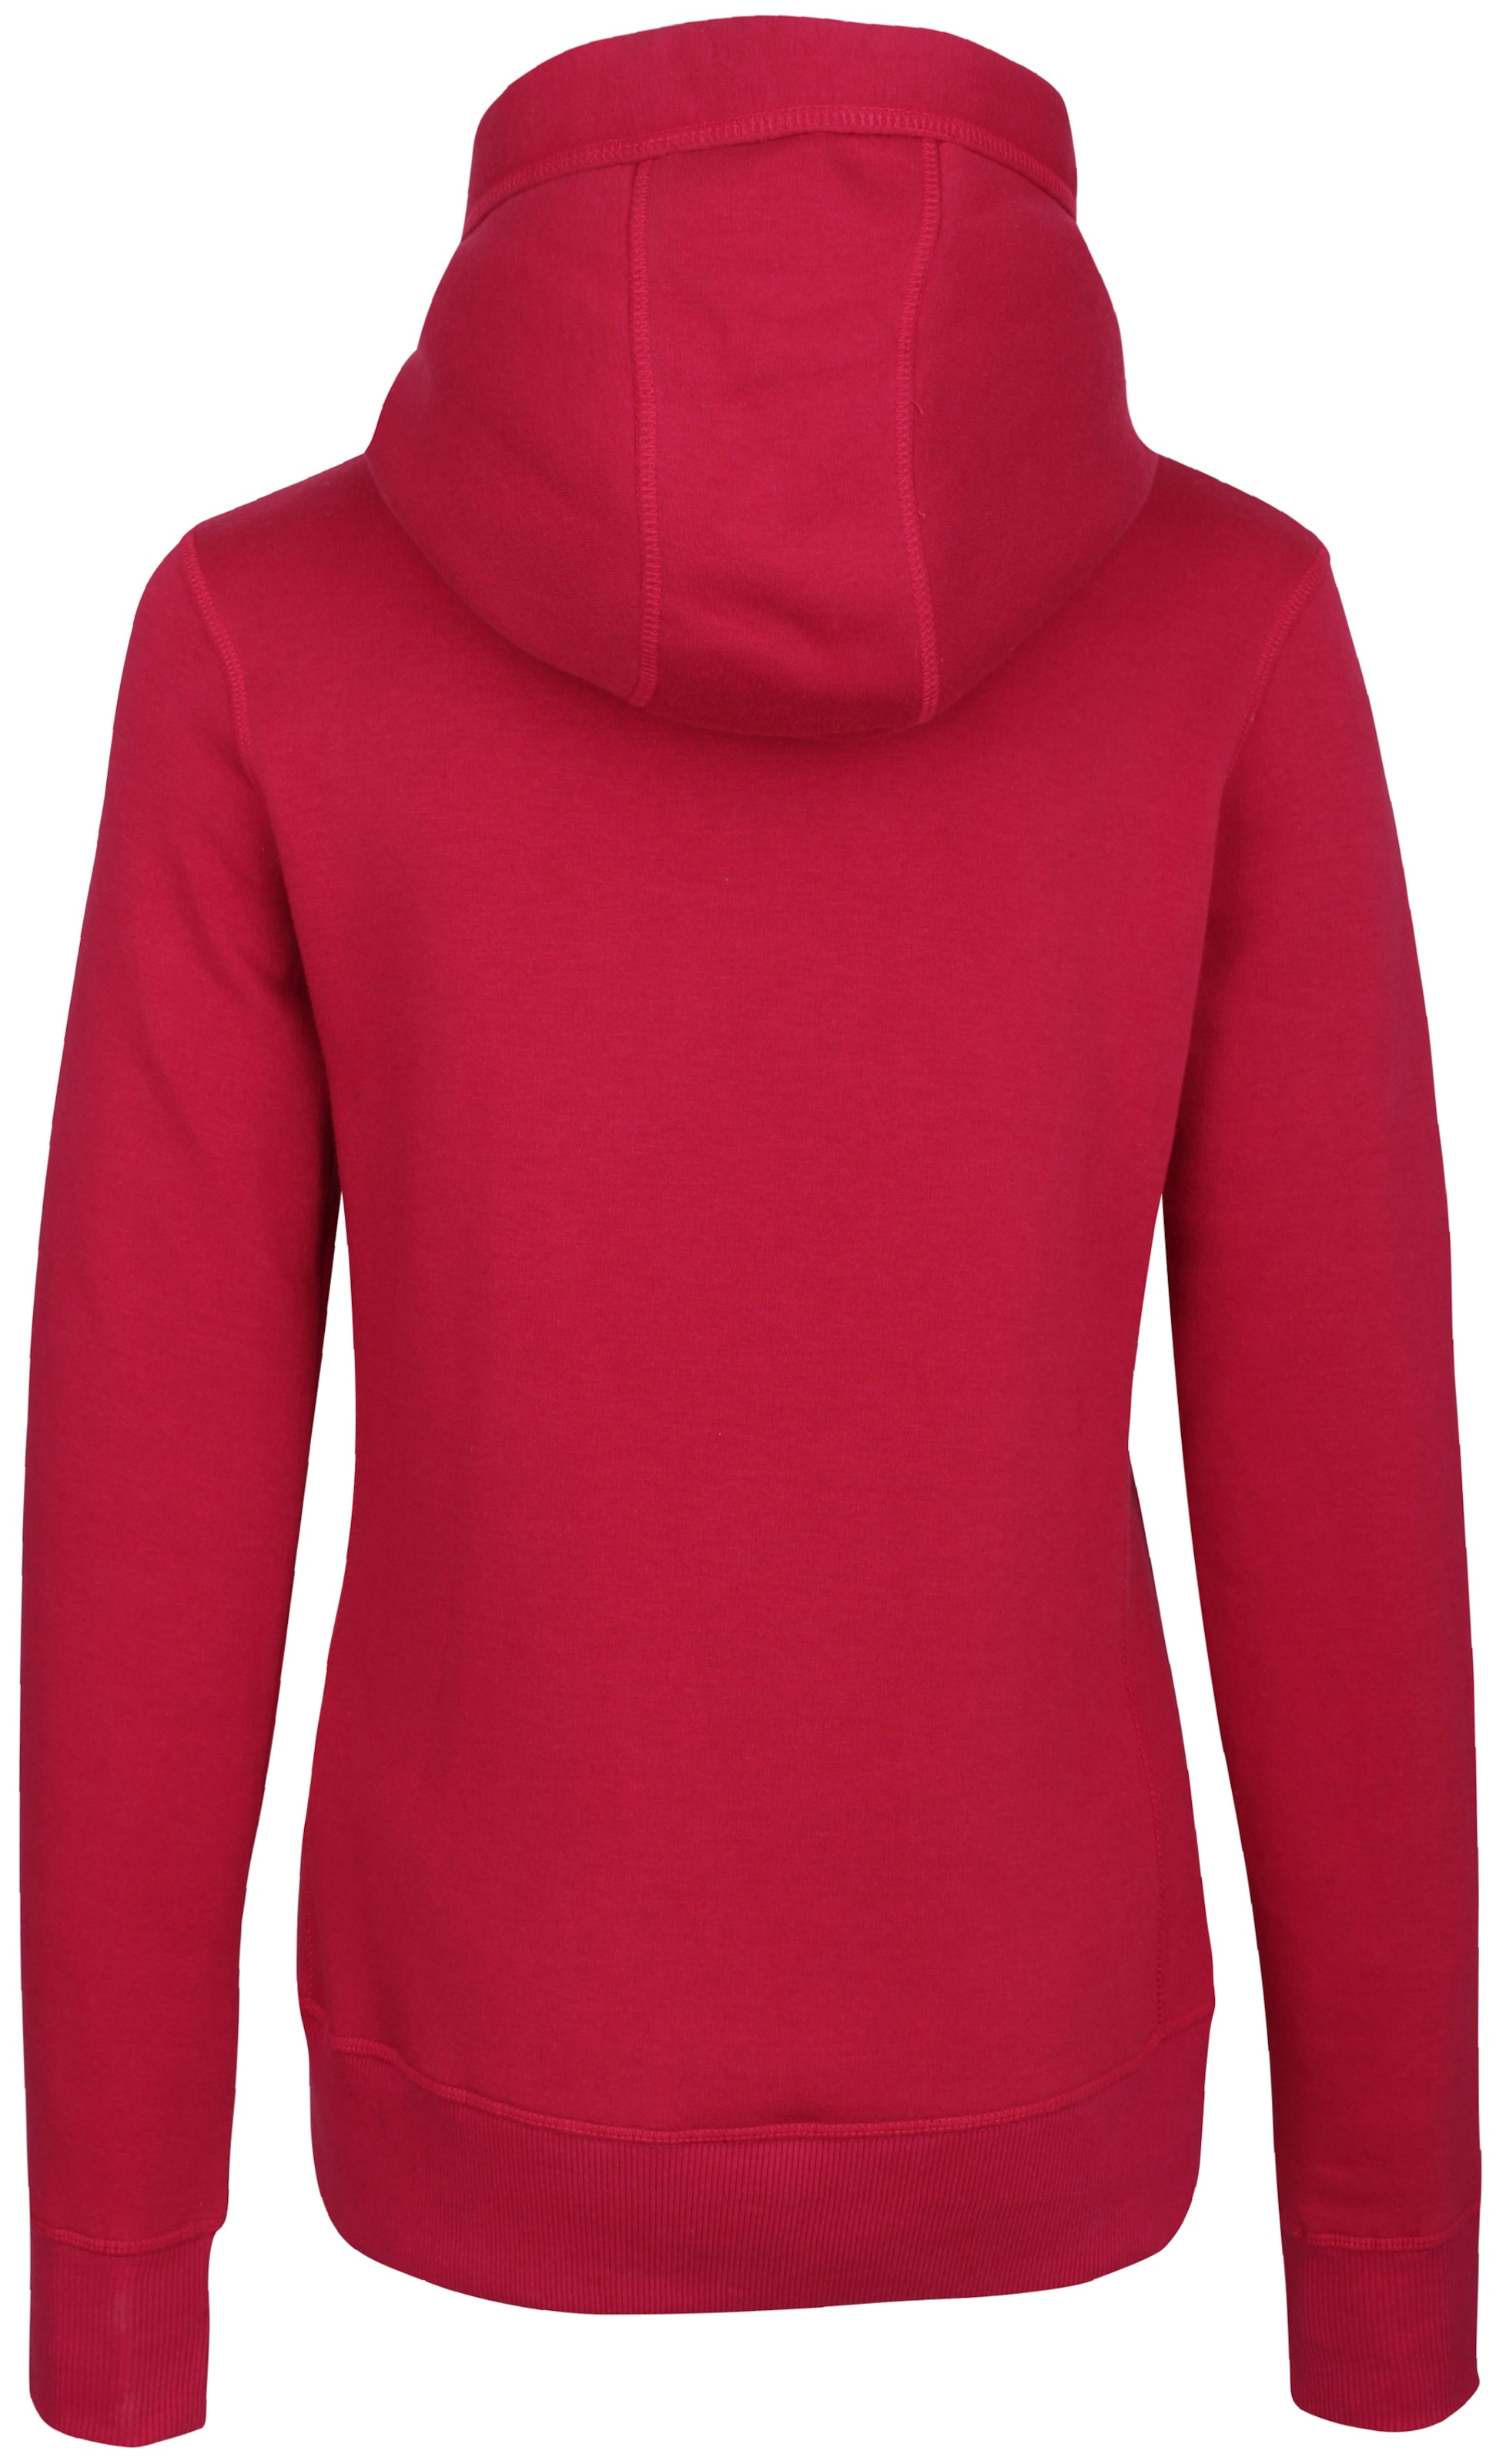 Mymo Sweat shirt shirt En Mymo Canneberge En Sweat cjq534SLAR